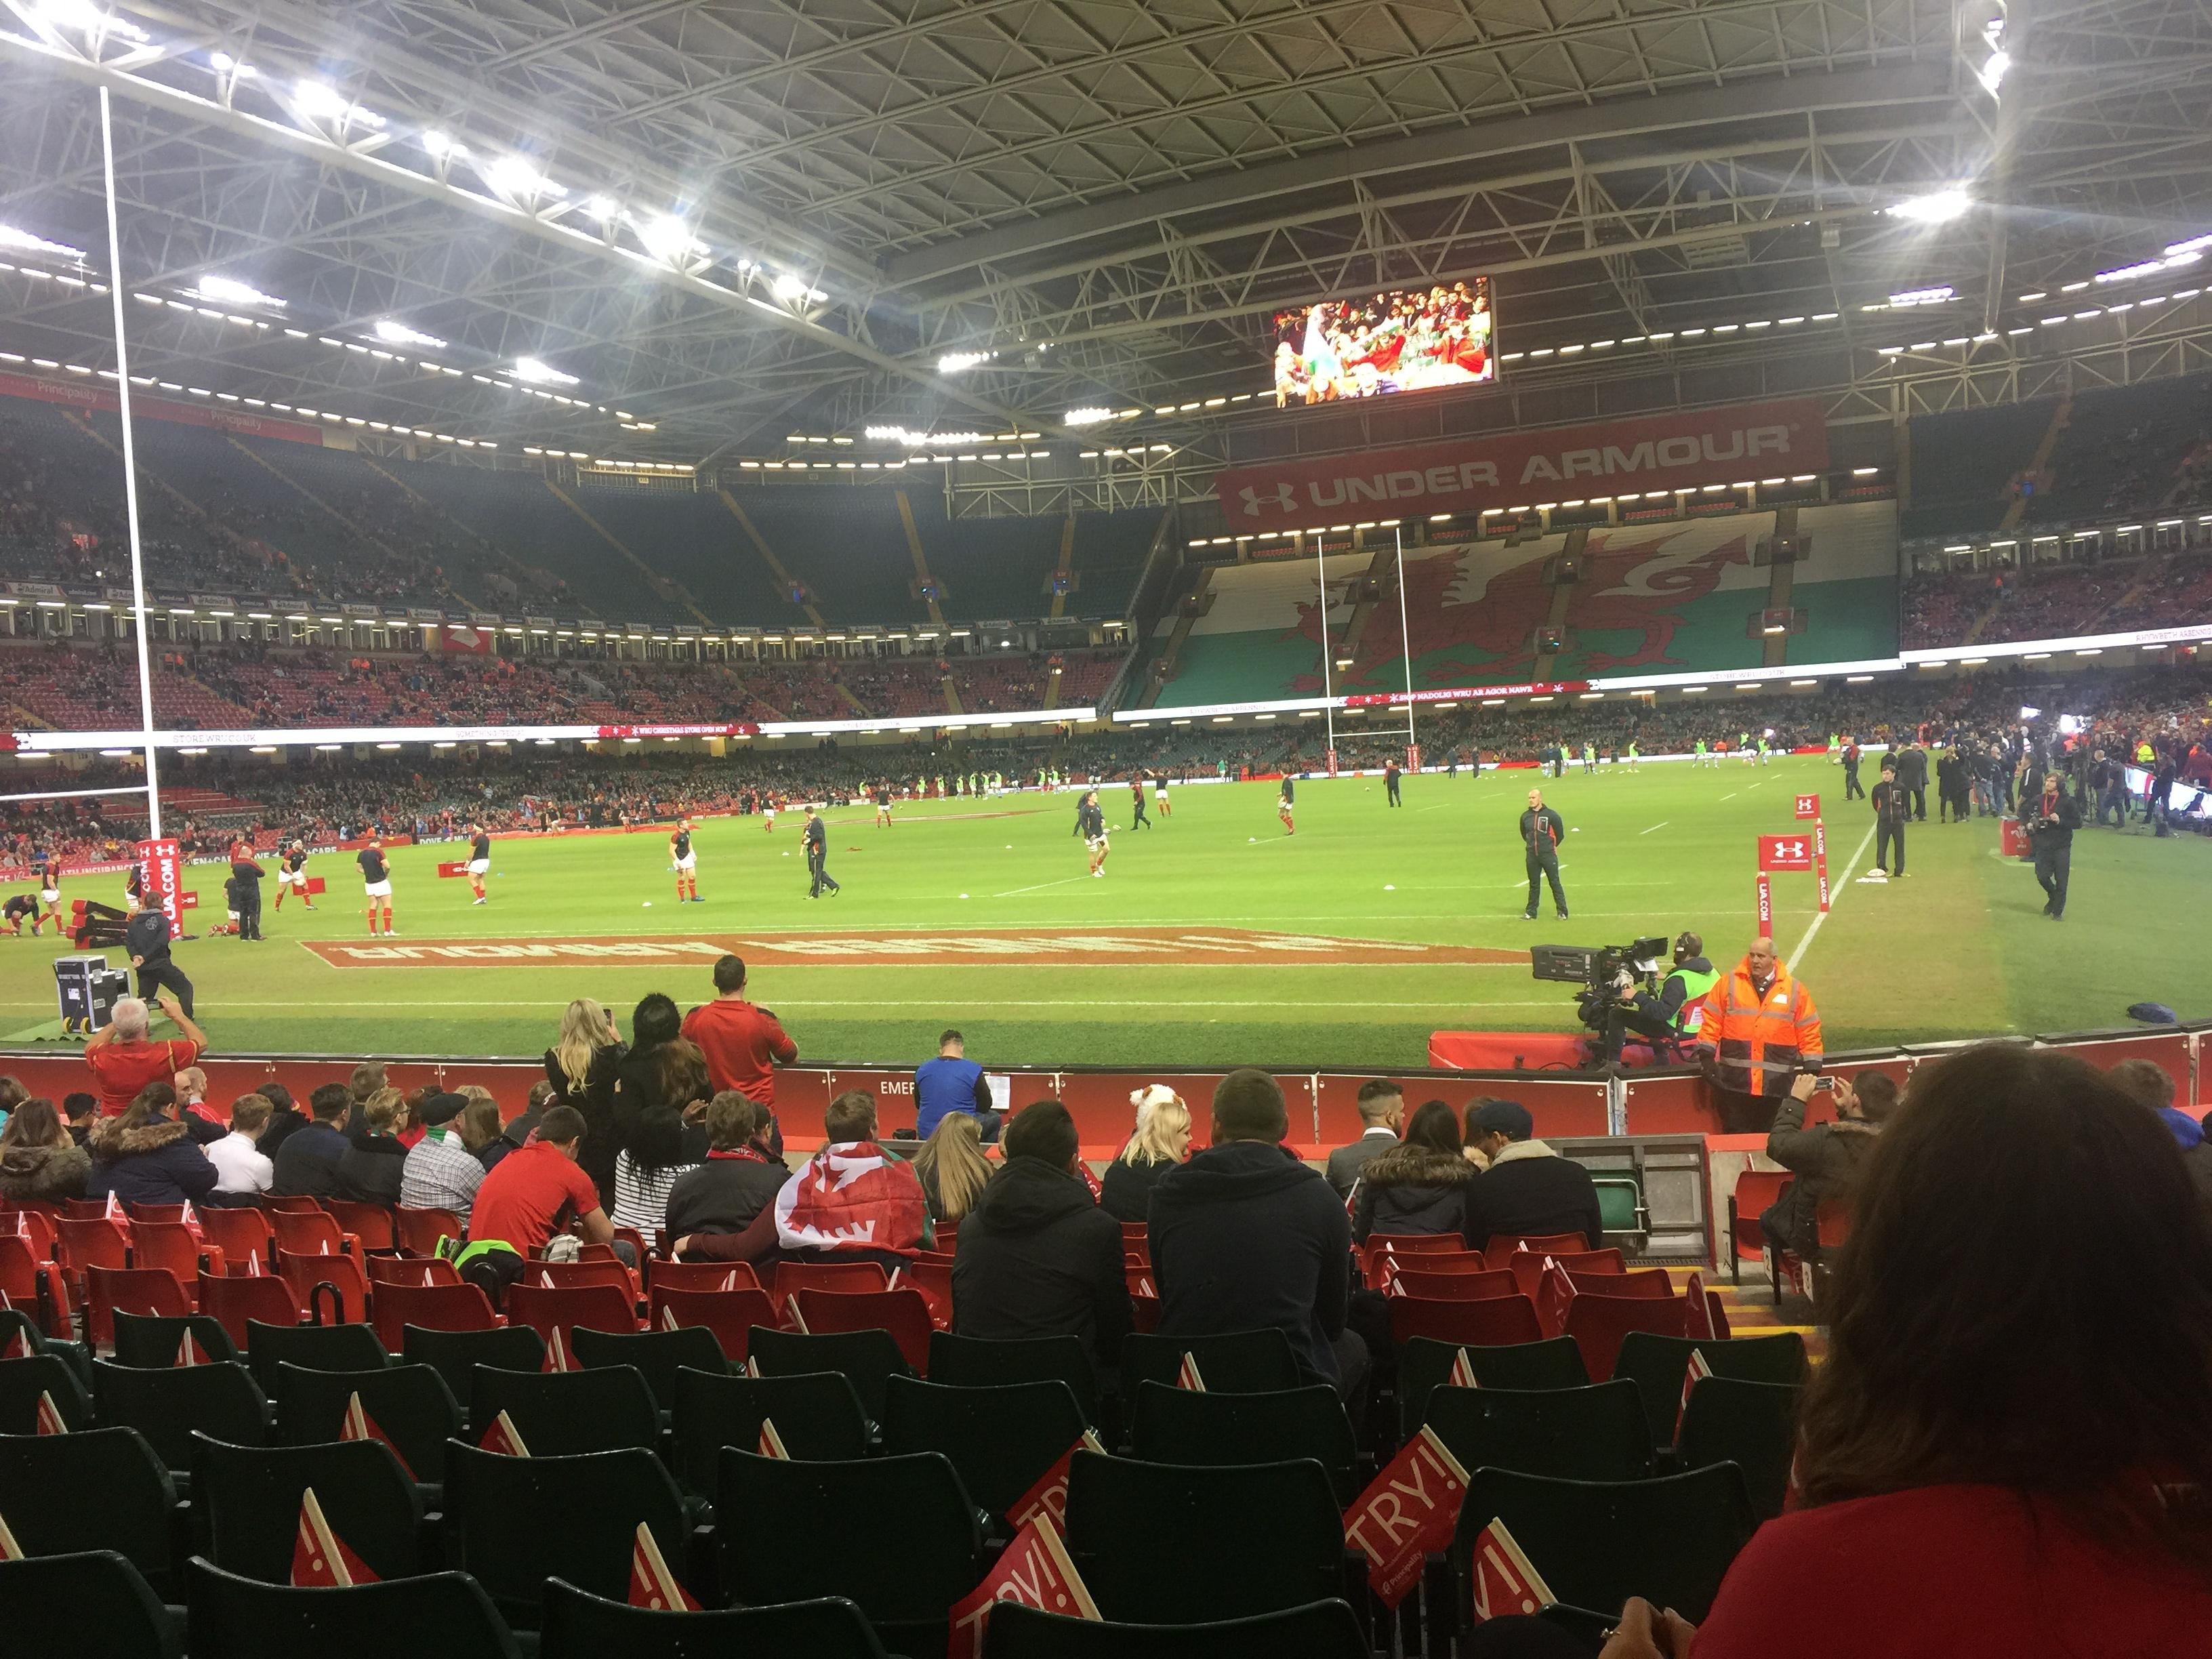 Principality stadium Section L17 Row 15 Seat 12